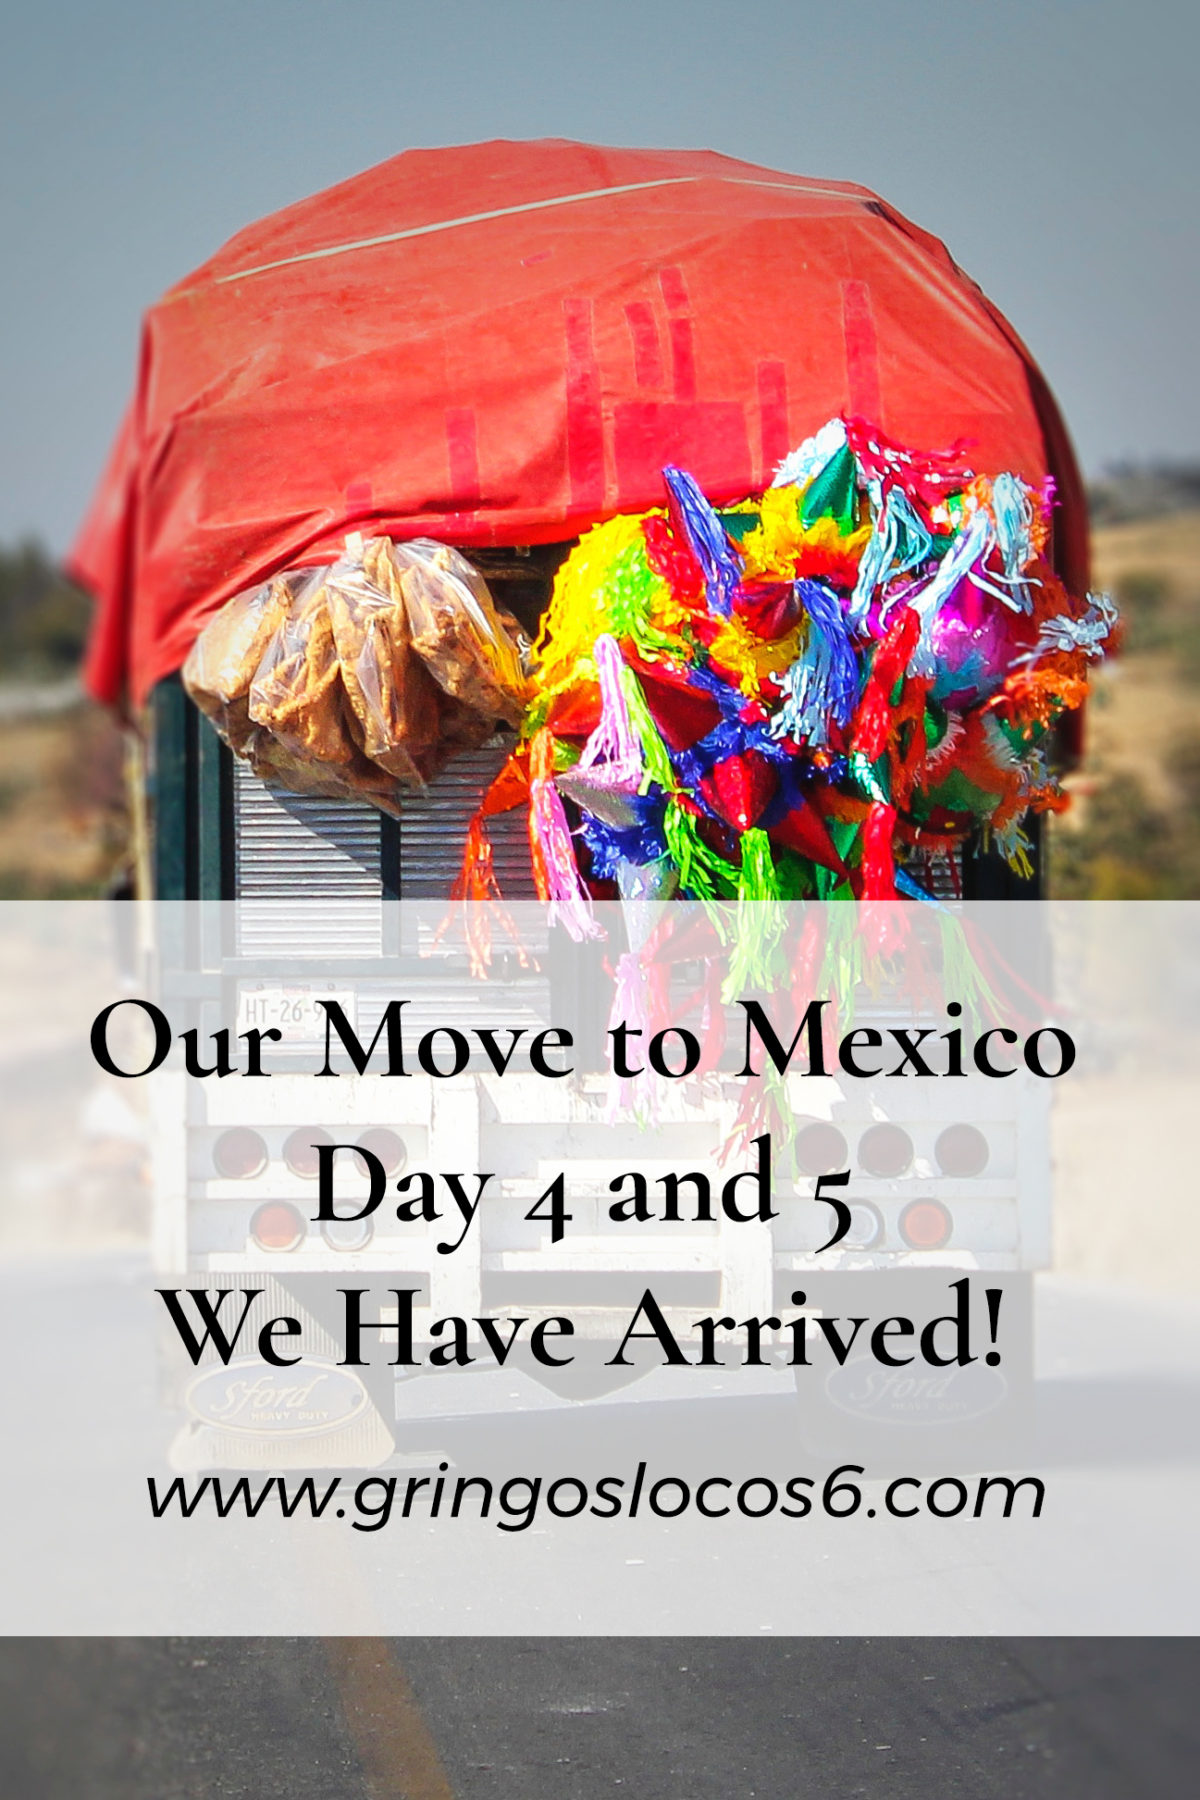 Yesterday was a long day. We left Texas at 3 am and got to our destination in Mexico at 9 pm. This is the still the beginning of our move to Mexico.